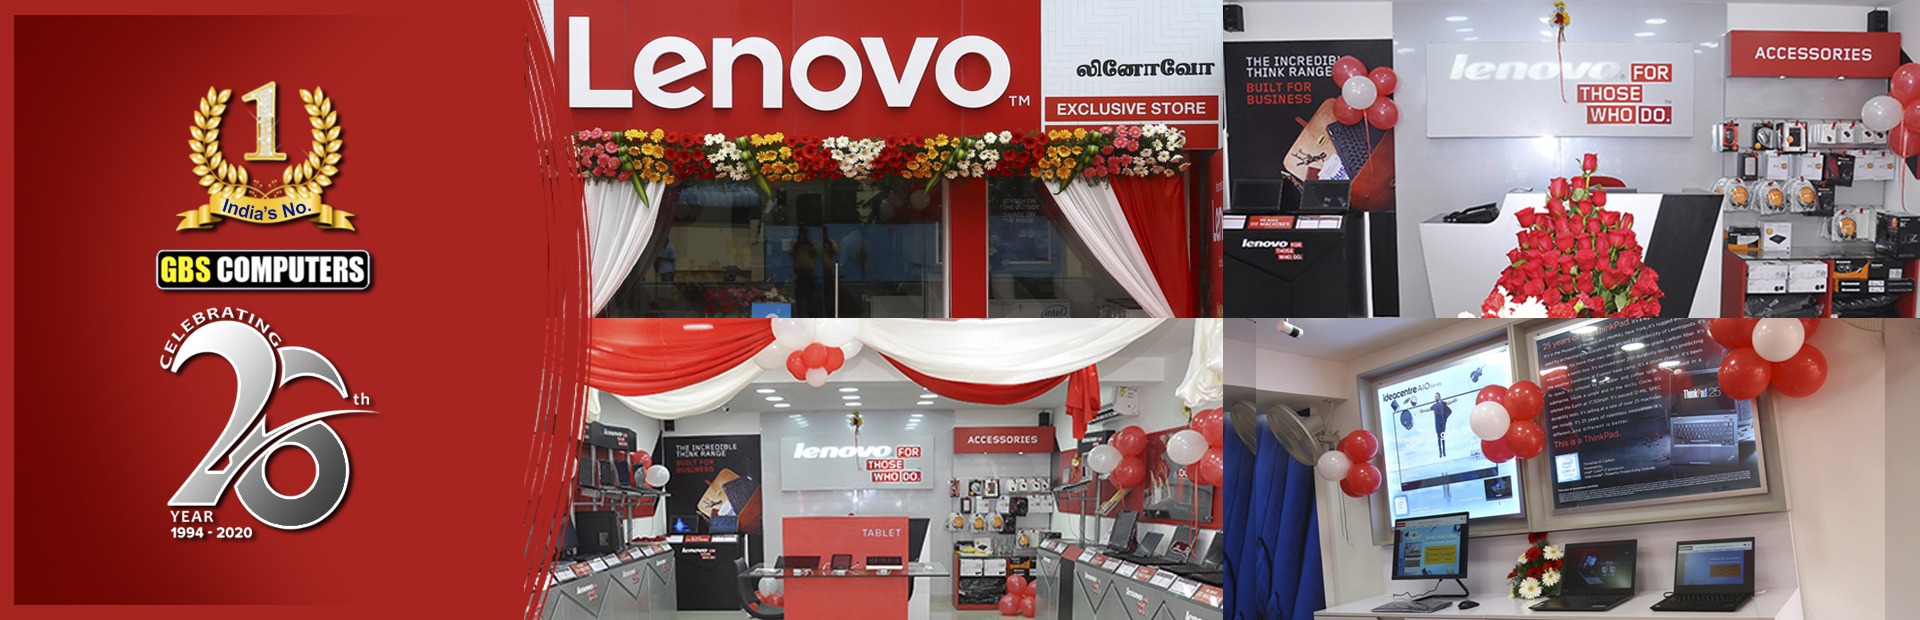 lenovo showroom gbs